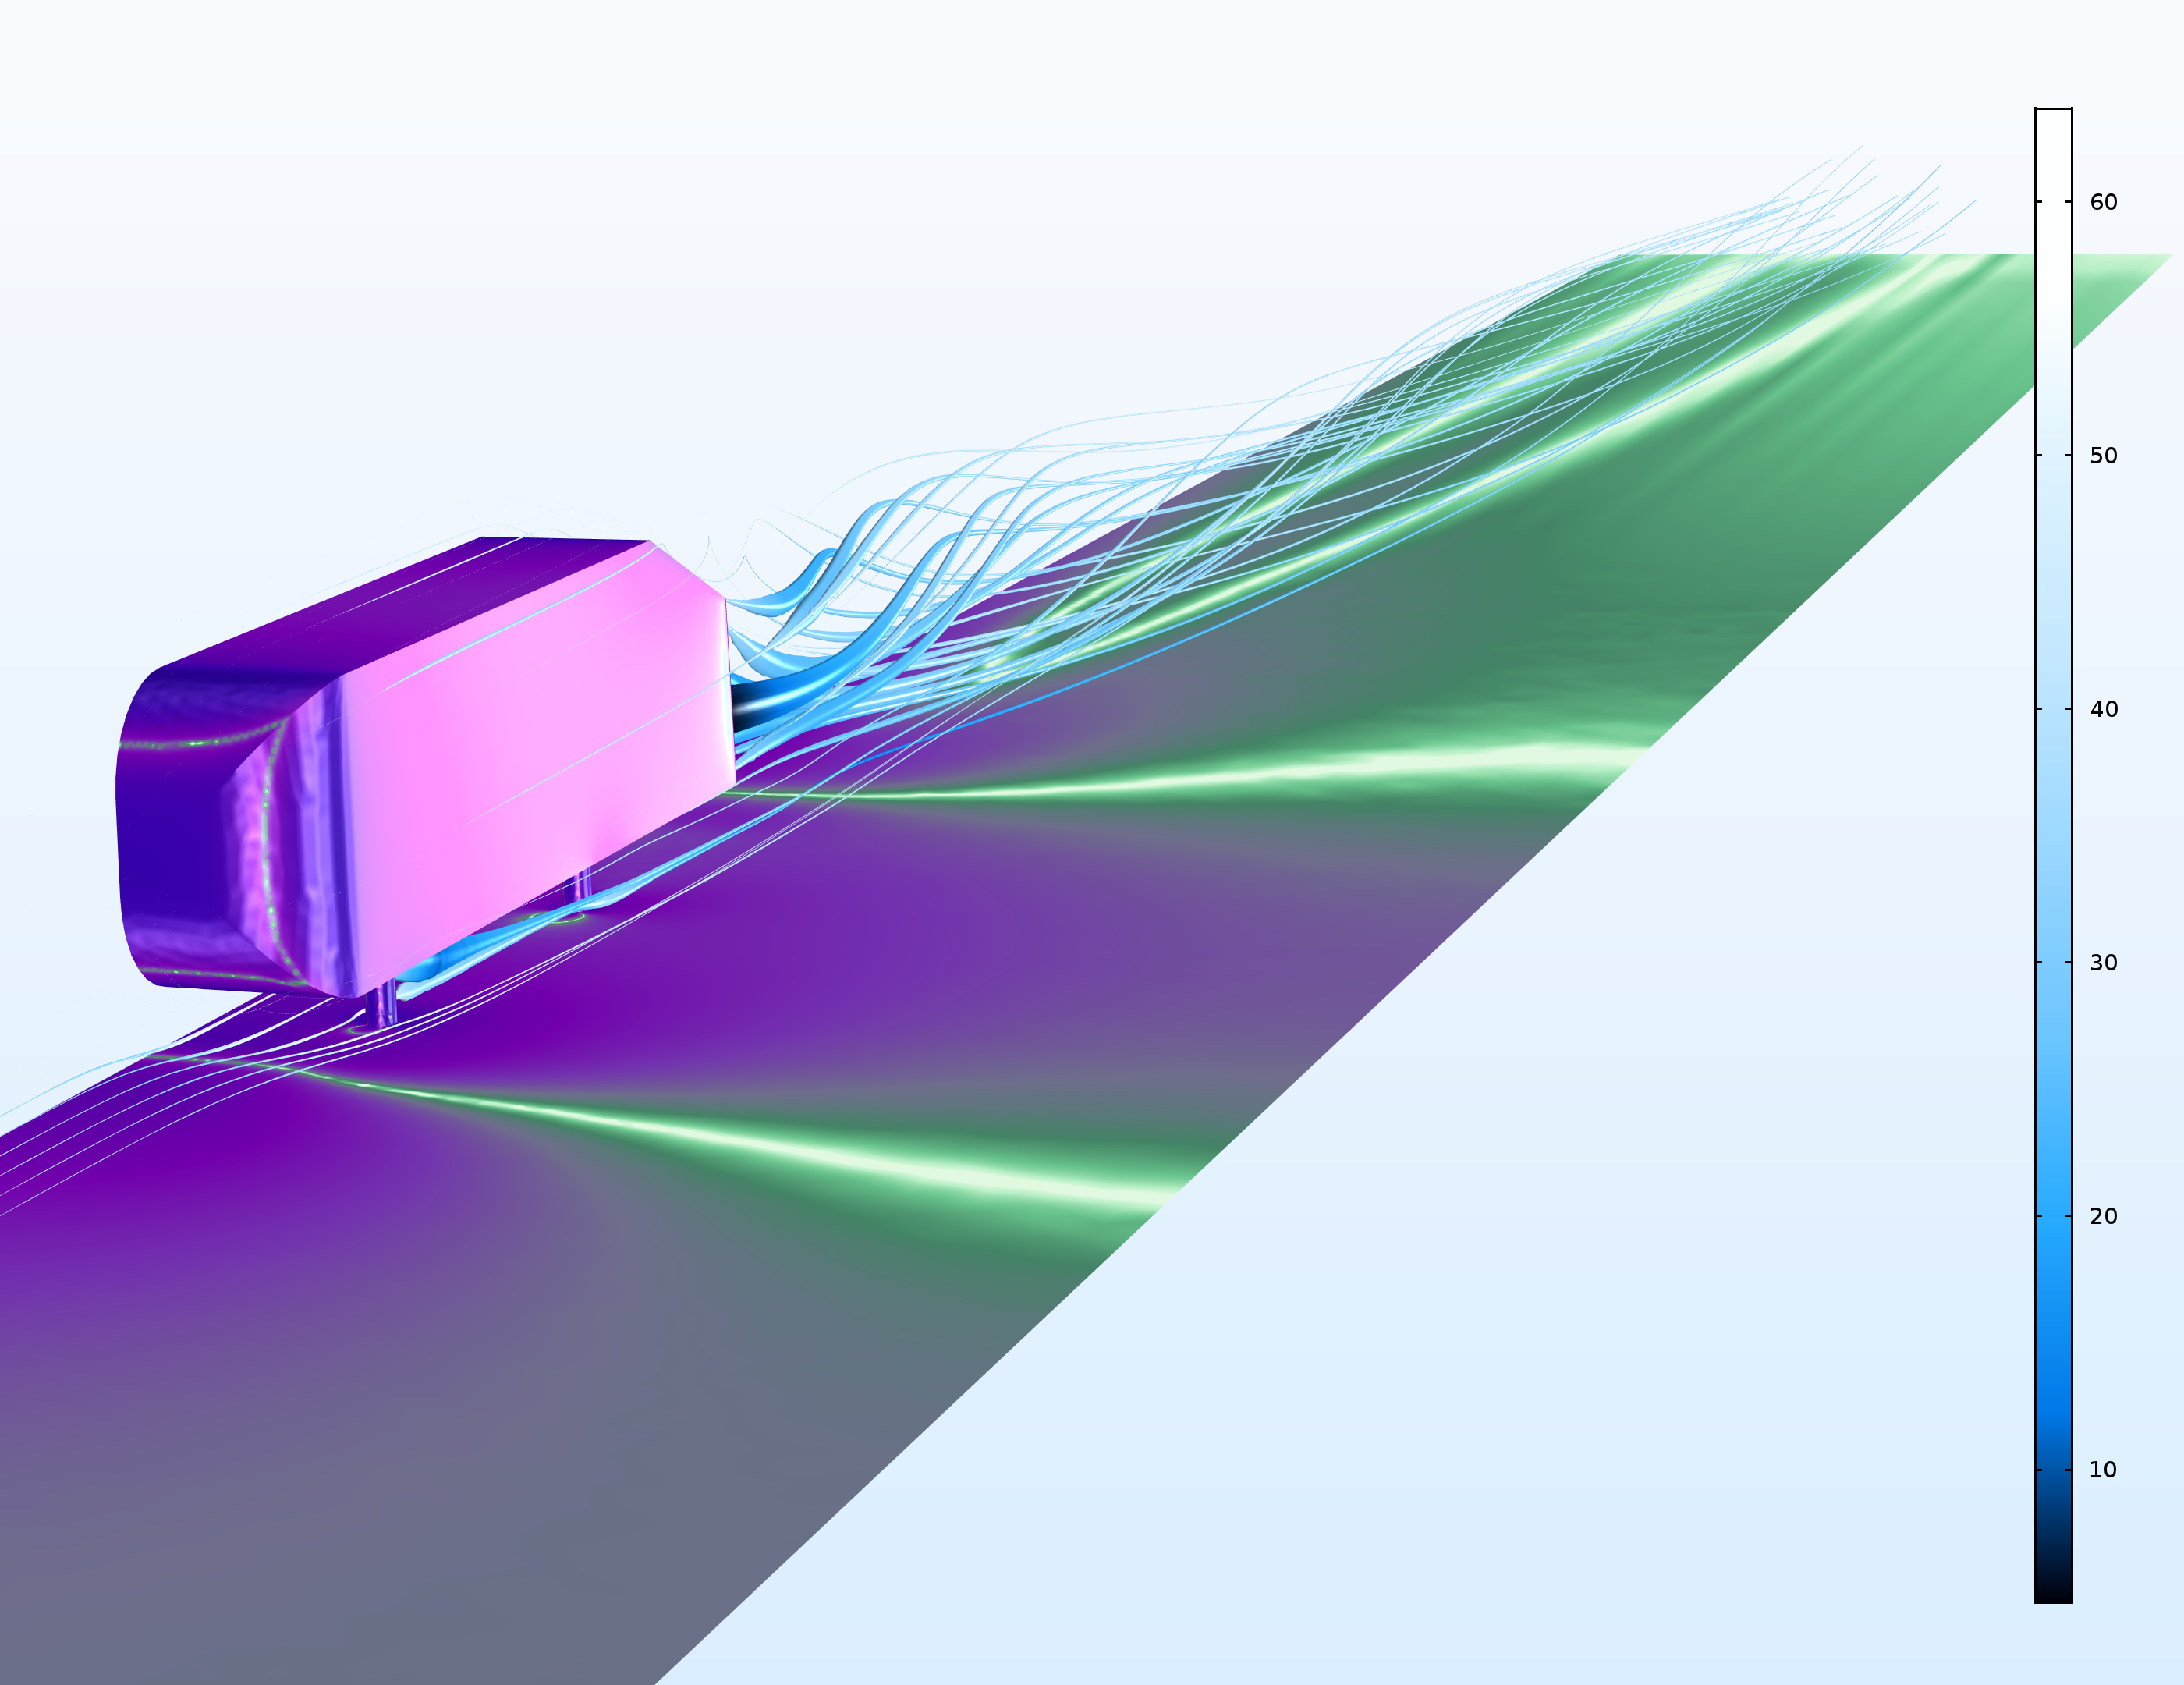 A visualization that uses the new Jupiter Aurora Borealis color table option, showing the streamline flow around a car-like Ahmed body from the Airflow Over an Ahmed Body tutorial model. The plot also shows the logarithm of the pressure field using the new Aurora Borealis color table option.